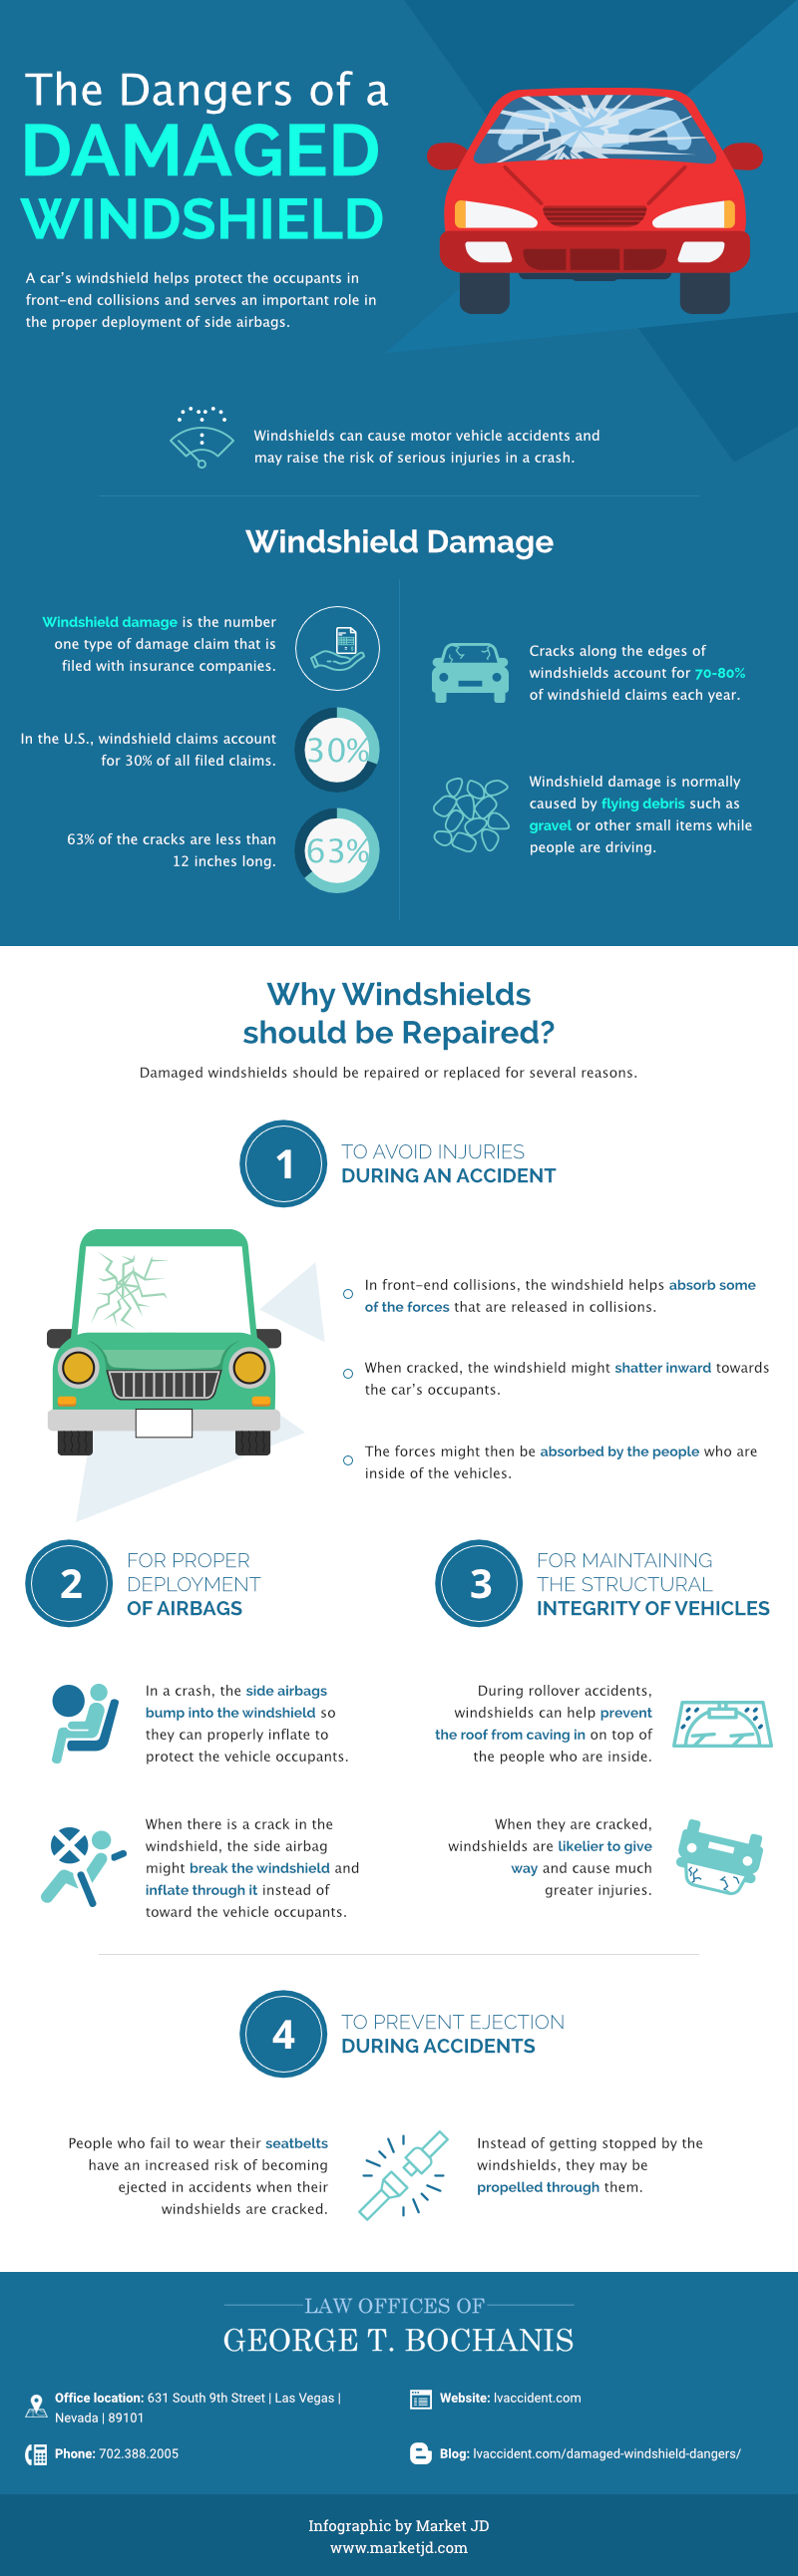 The Dangers of a Damaged Windshield